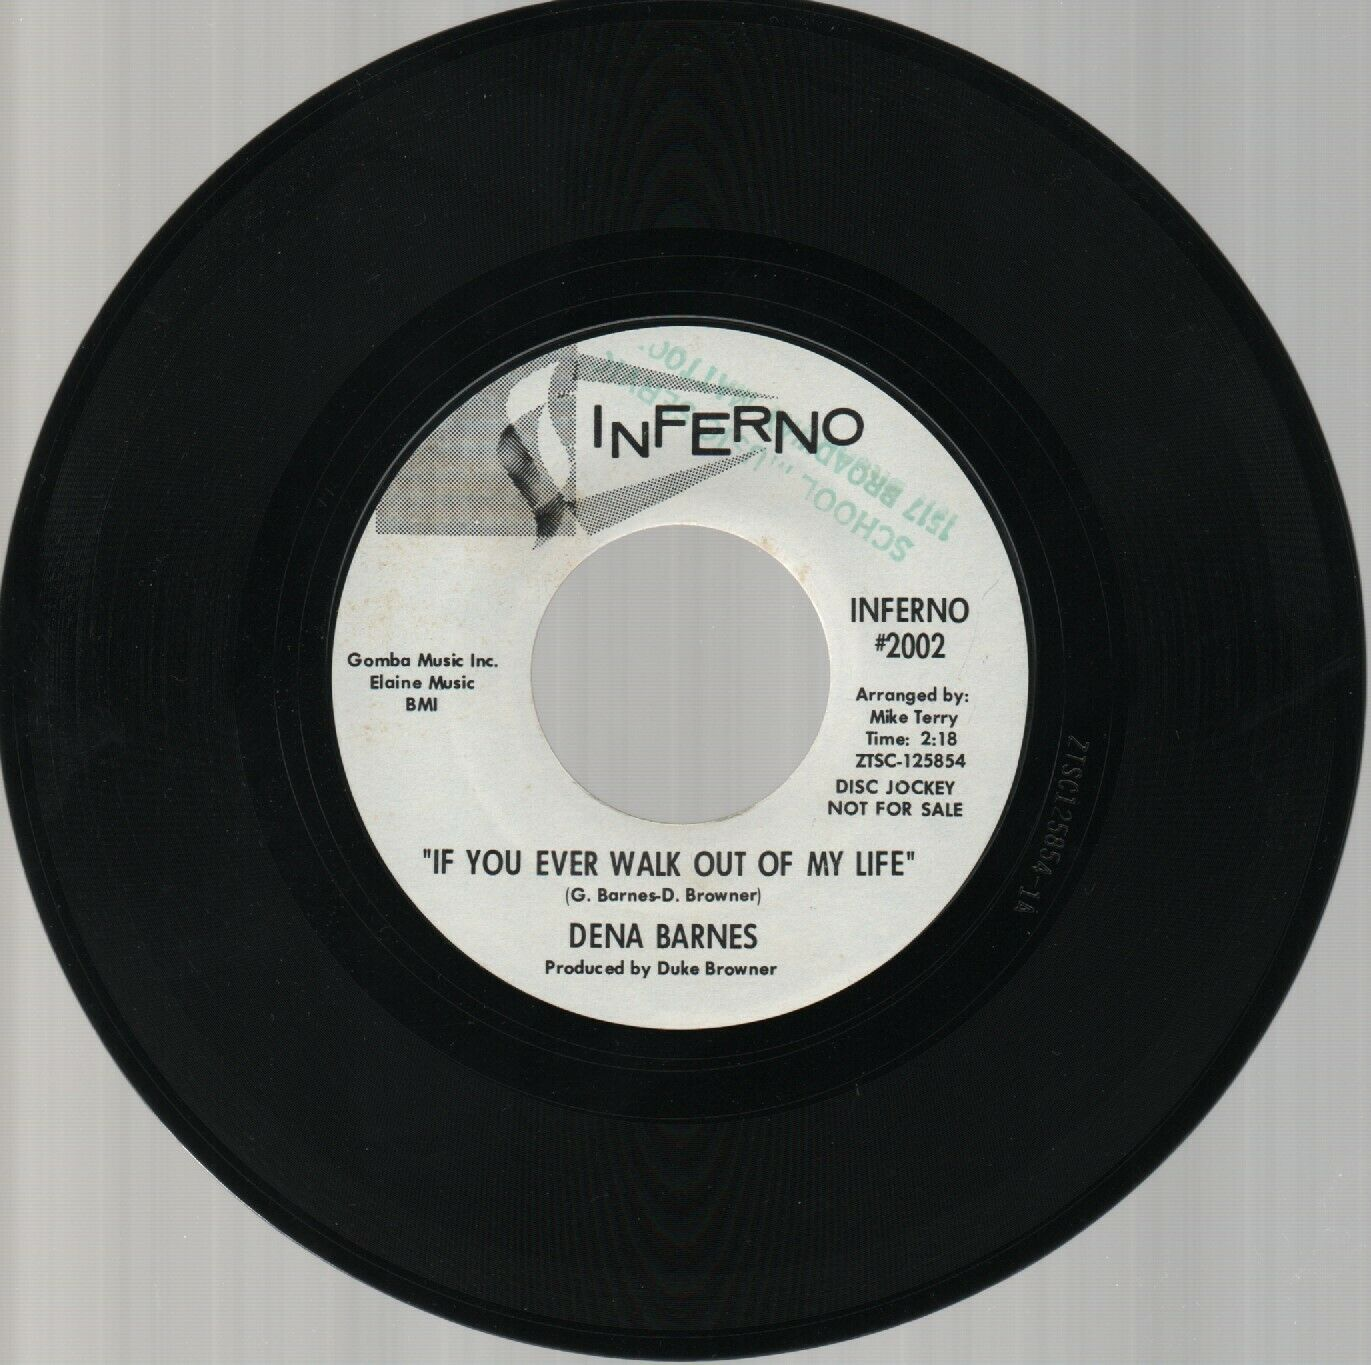 "DENA BARNES Northern Soul 7"" Promo 45 IF YOU EVER WALK OUT OF MY LIFE / WHO AM I"